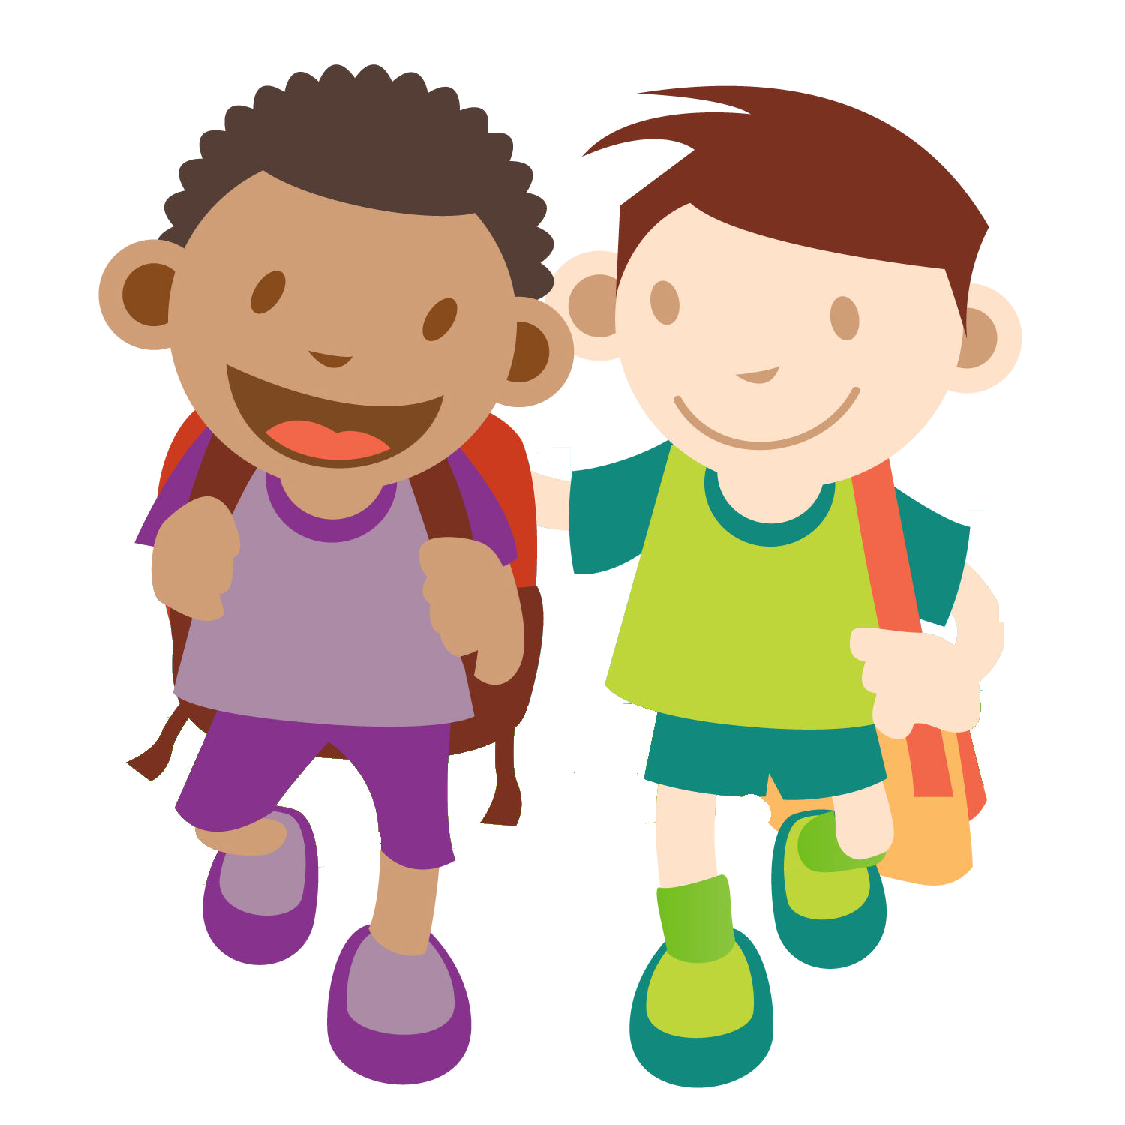 Children Walking Clip Art | Clipart Panda - Free Clipart ...